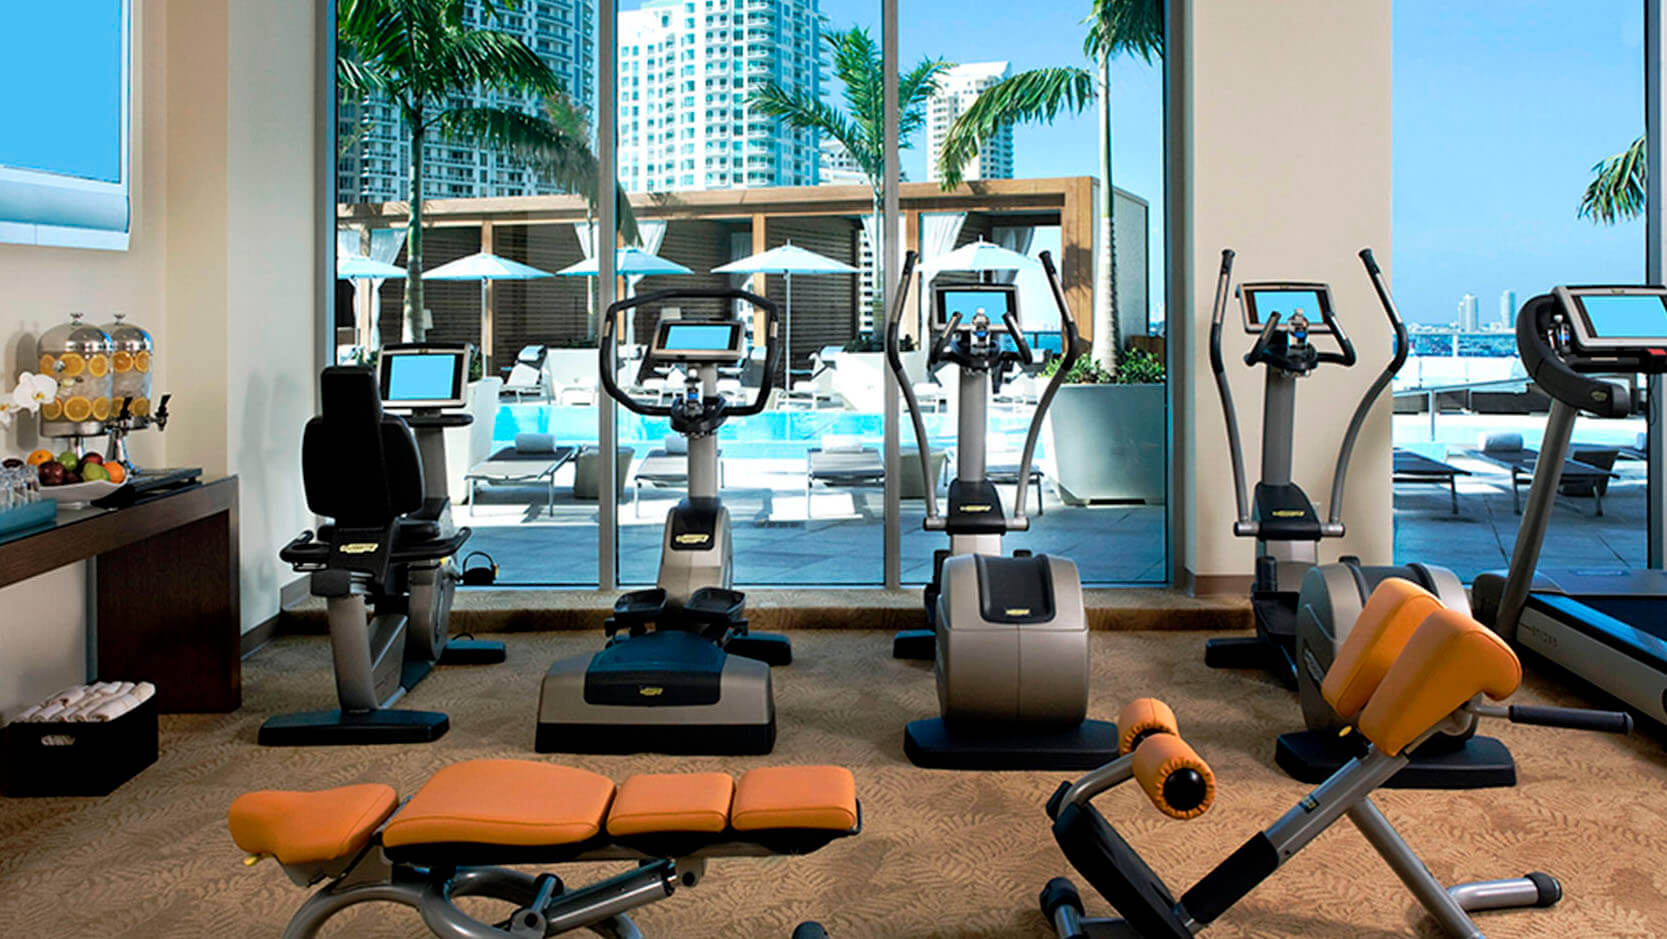 The Best Gyms in Miami